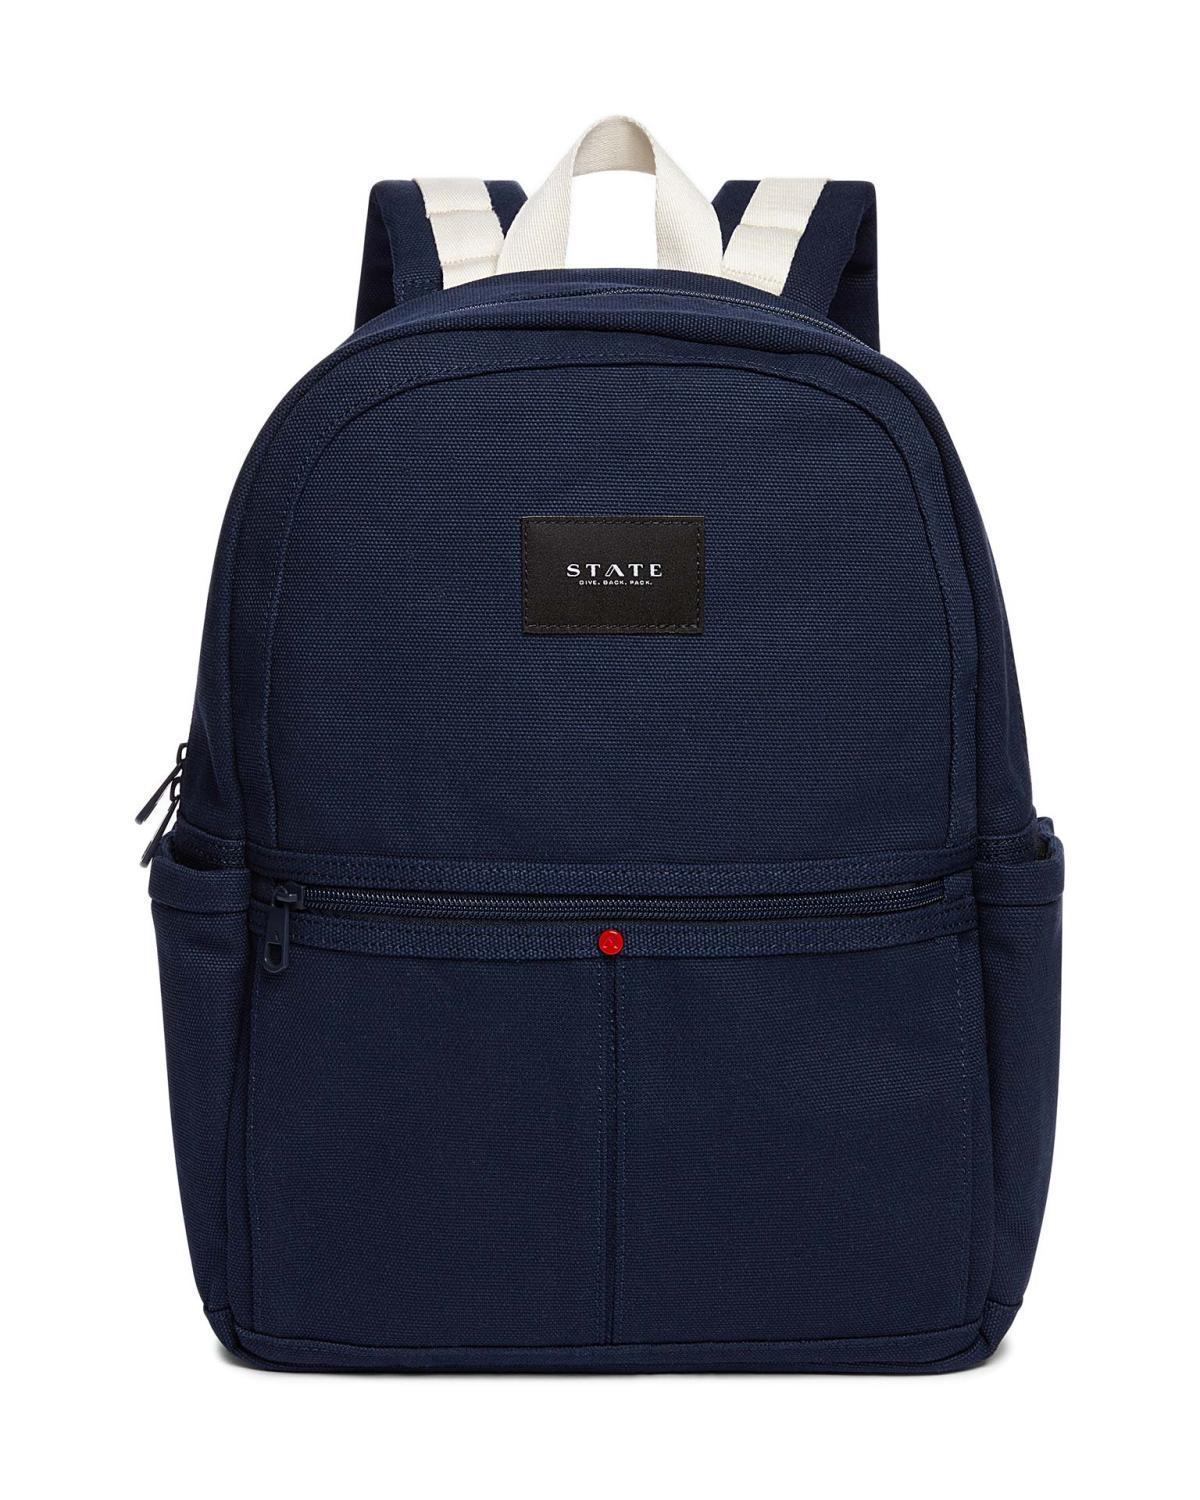 Little state bags accessories kane backpack in navy